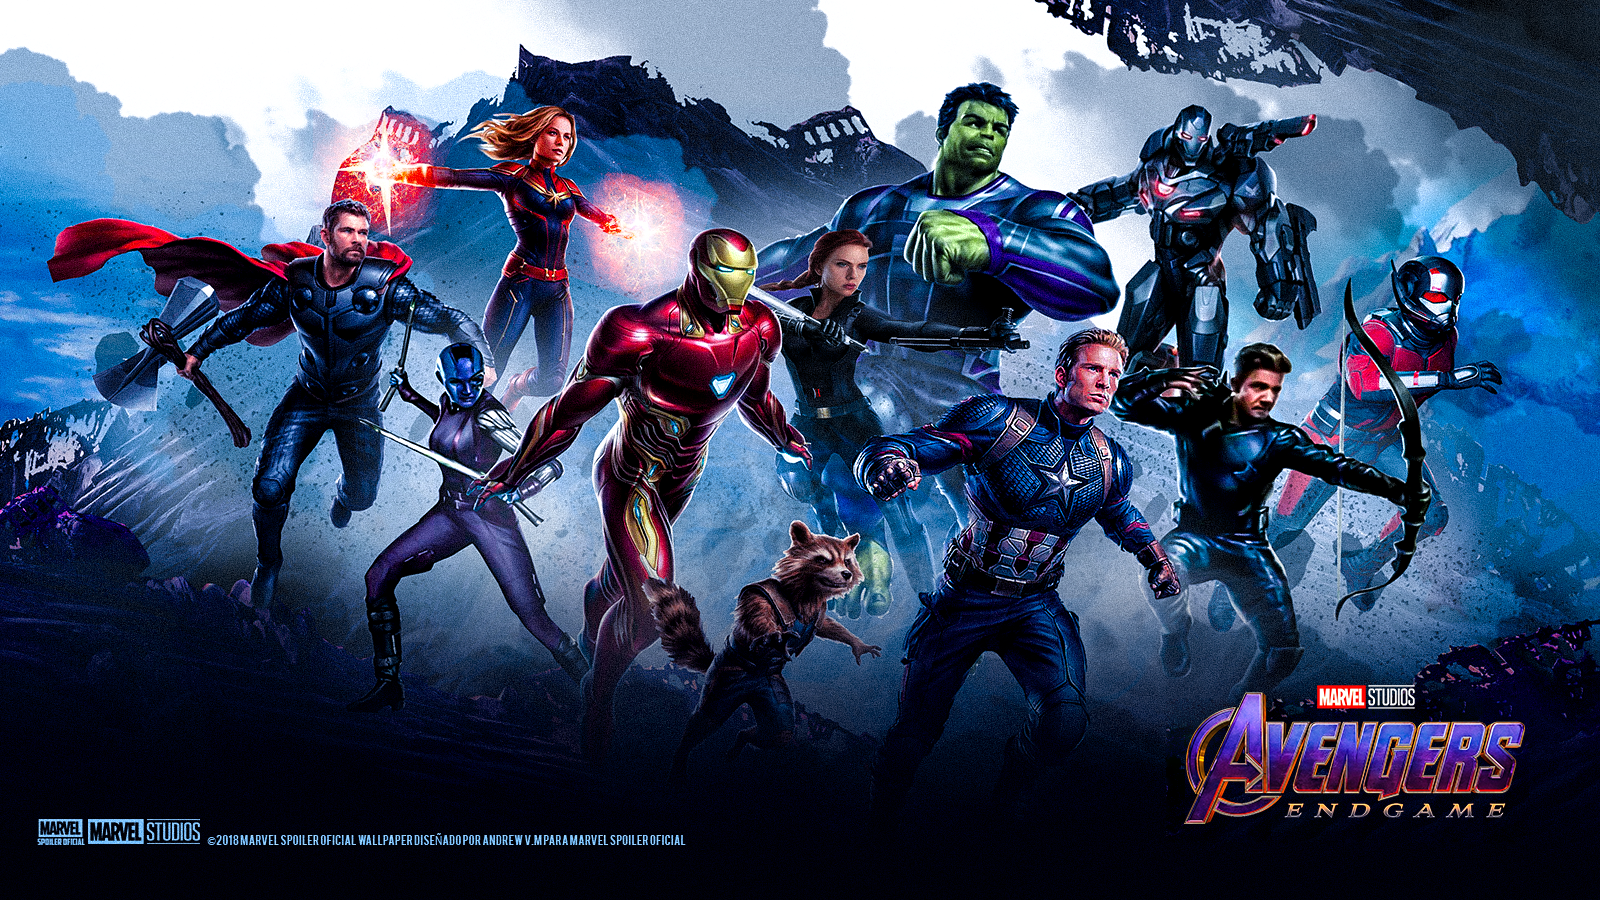 Avengers 4 End Game And Infinity War Hd Wallpapers Avengers Endgame Wallpaper 4k 5084 Hd Wallpaper Backgrounds Download